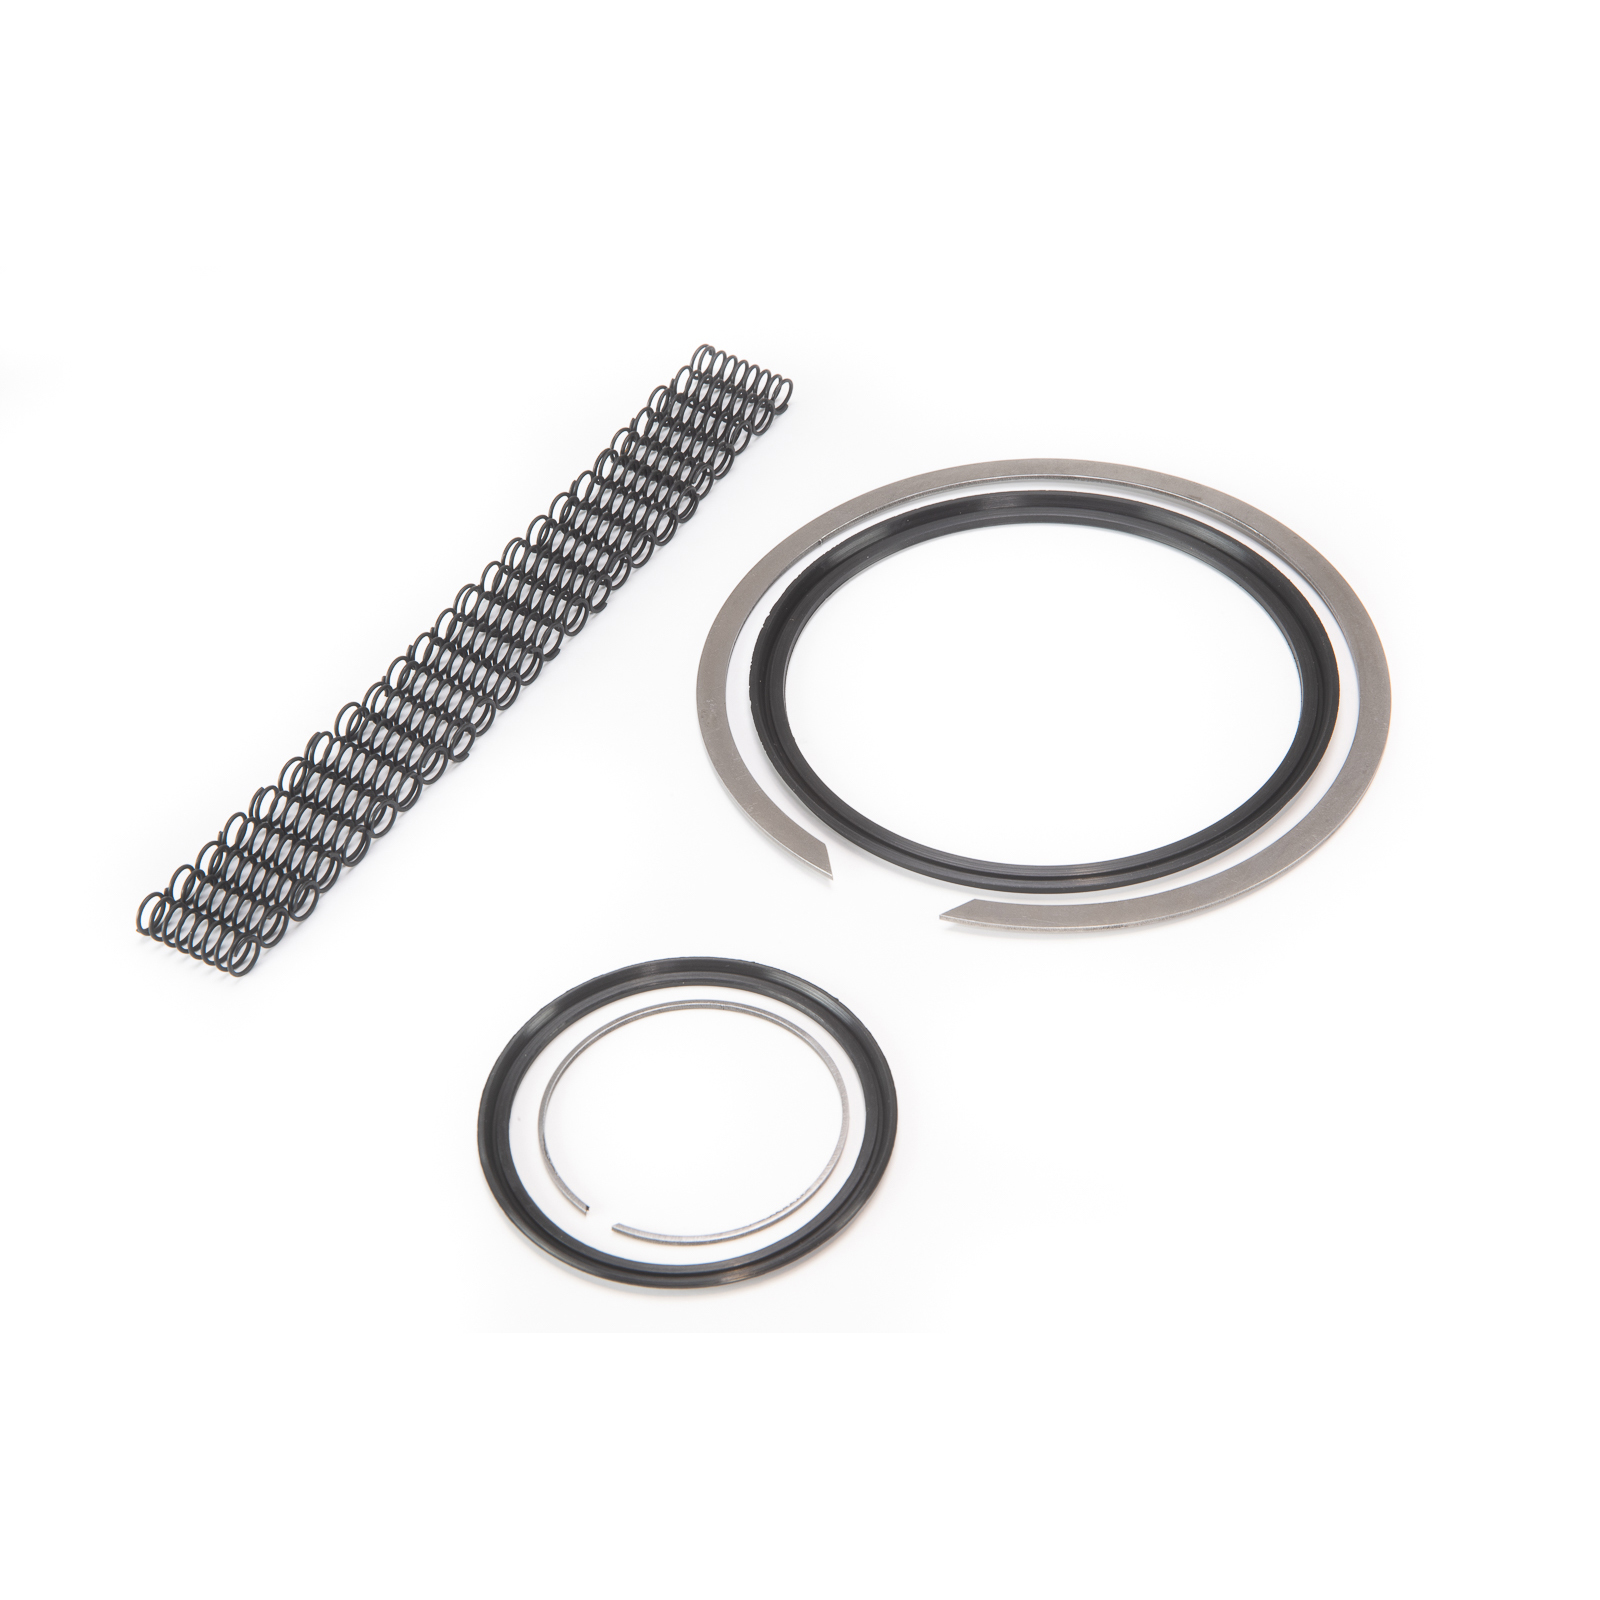 GM Powerglide 10 Clutch Hub Shim and Spring Kit